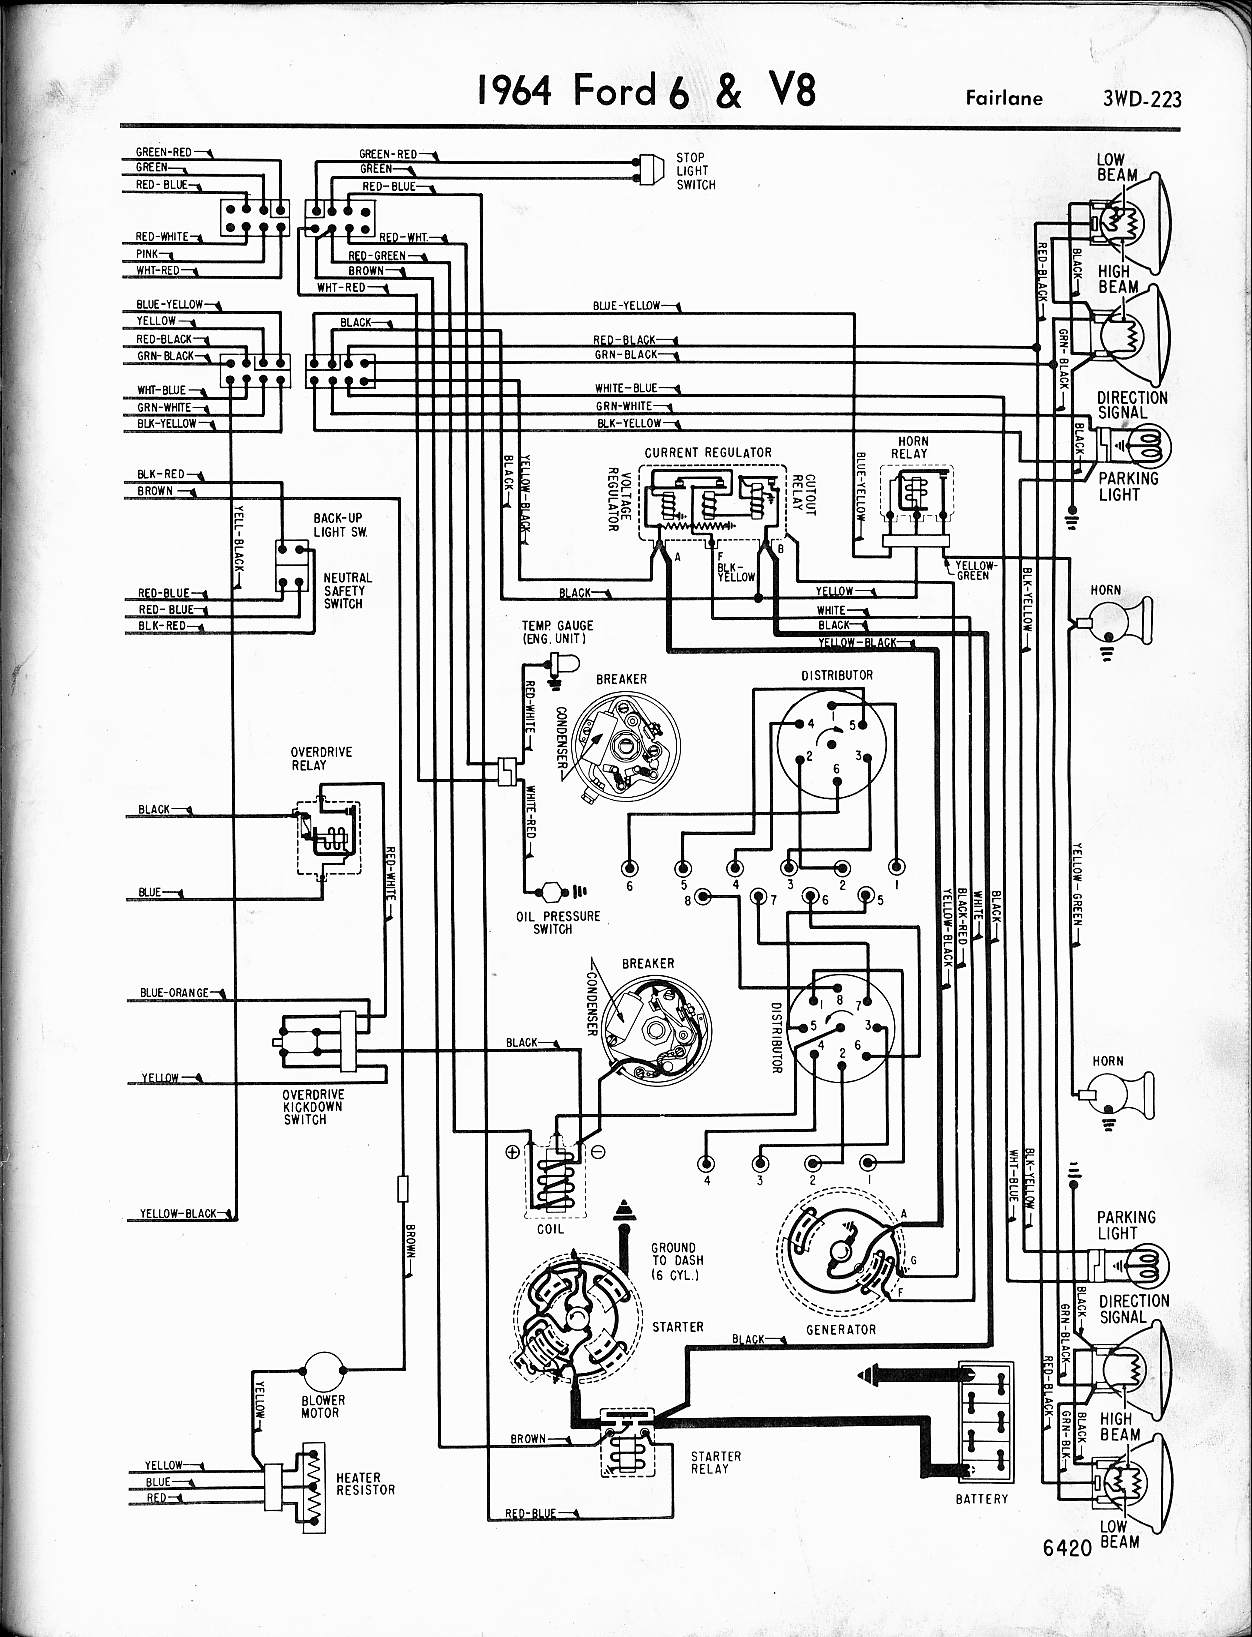 MWire5765 223 1964 1966 thunderbirfd wiring schematic 66 mustang wiring diagram 1966 ford truck wiring diagram at crackthecode.co